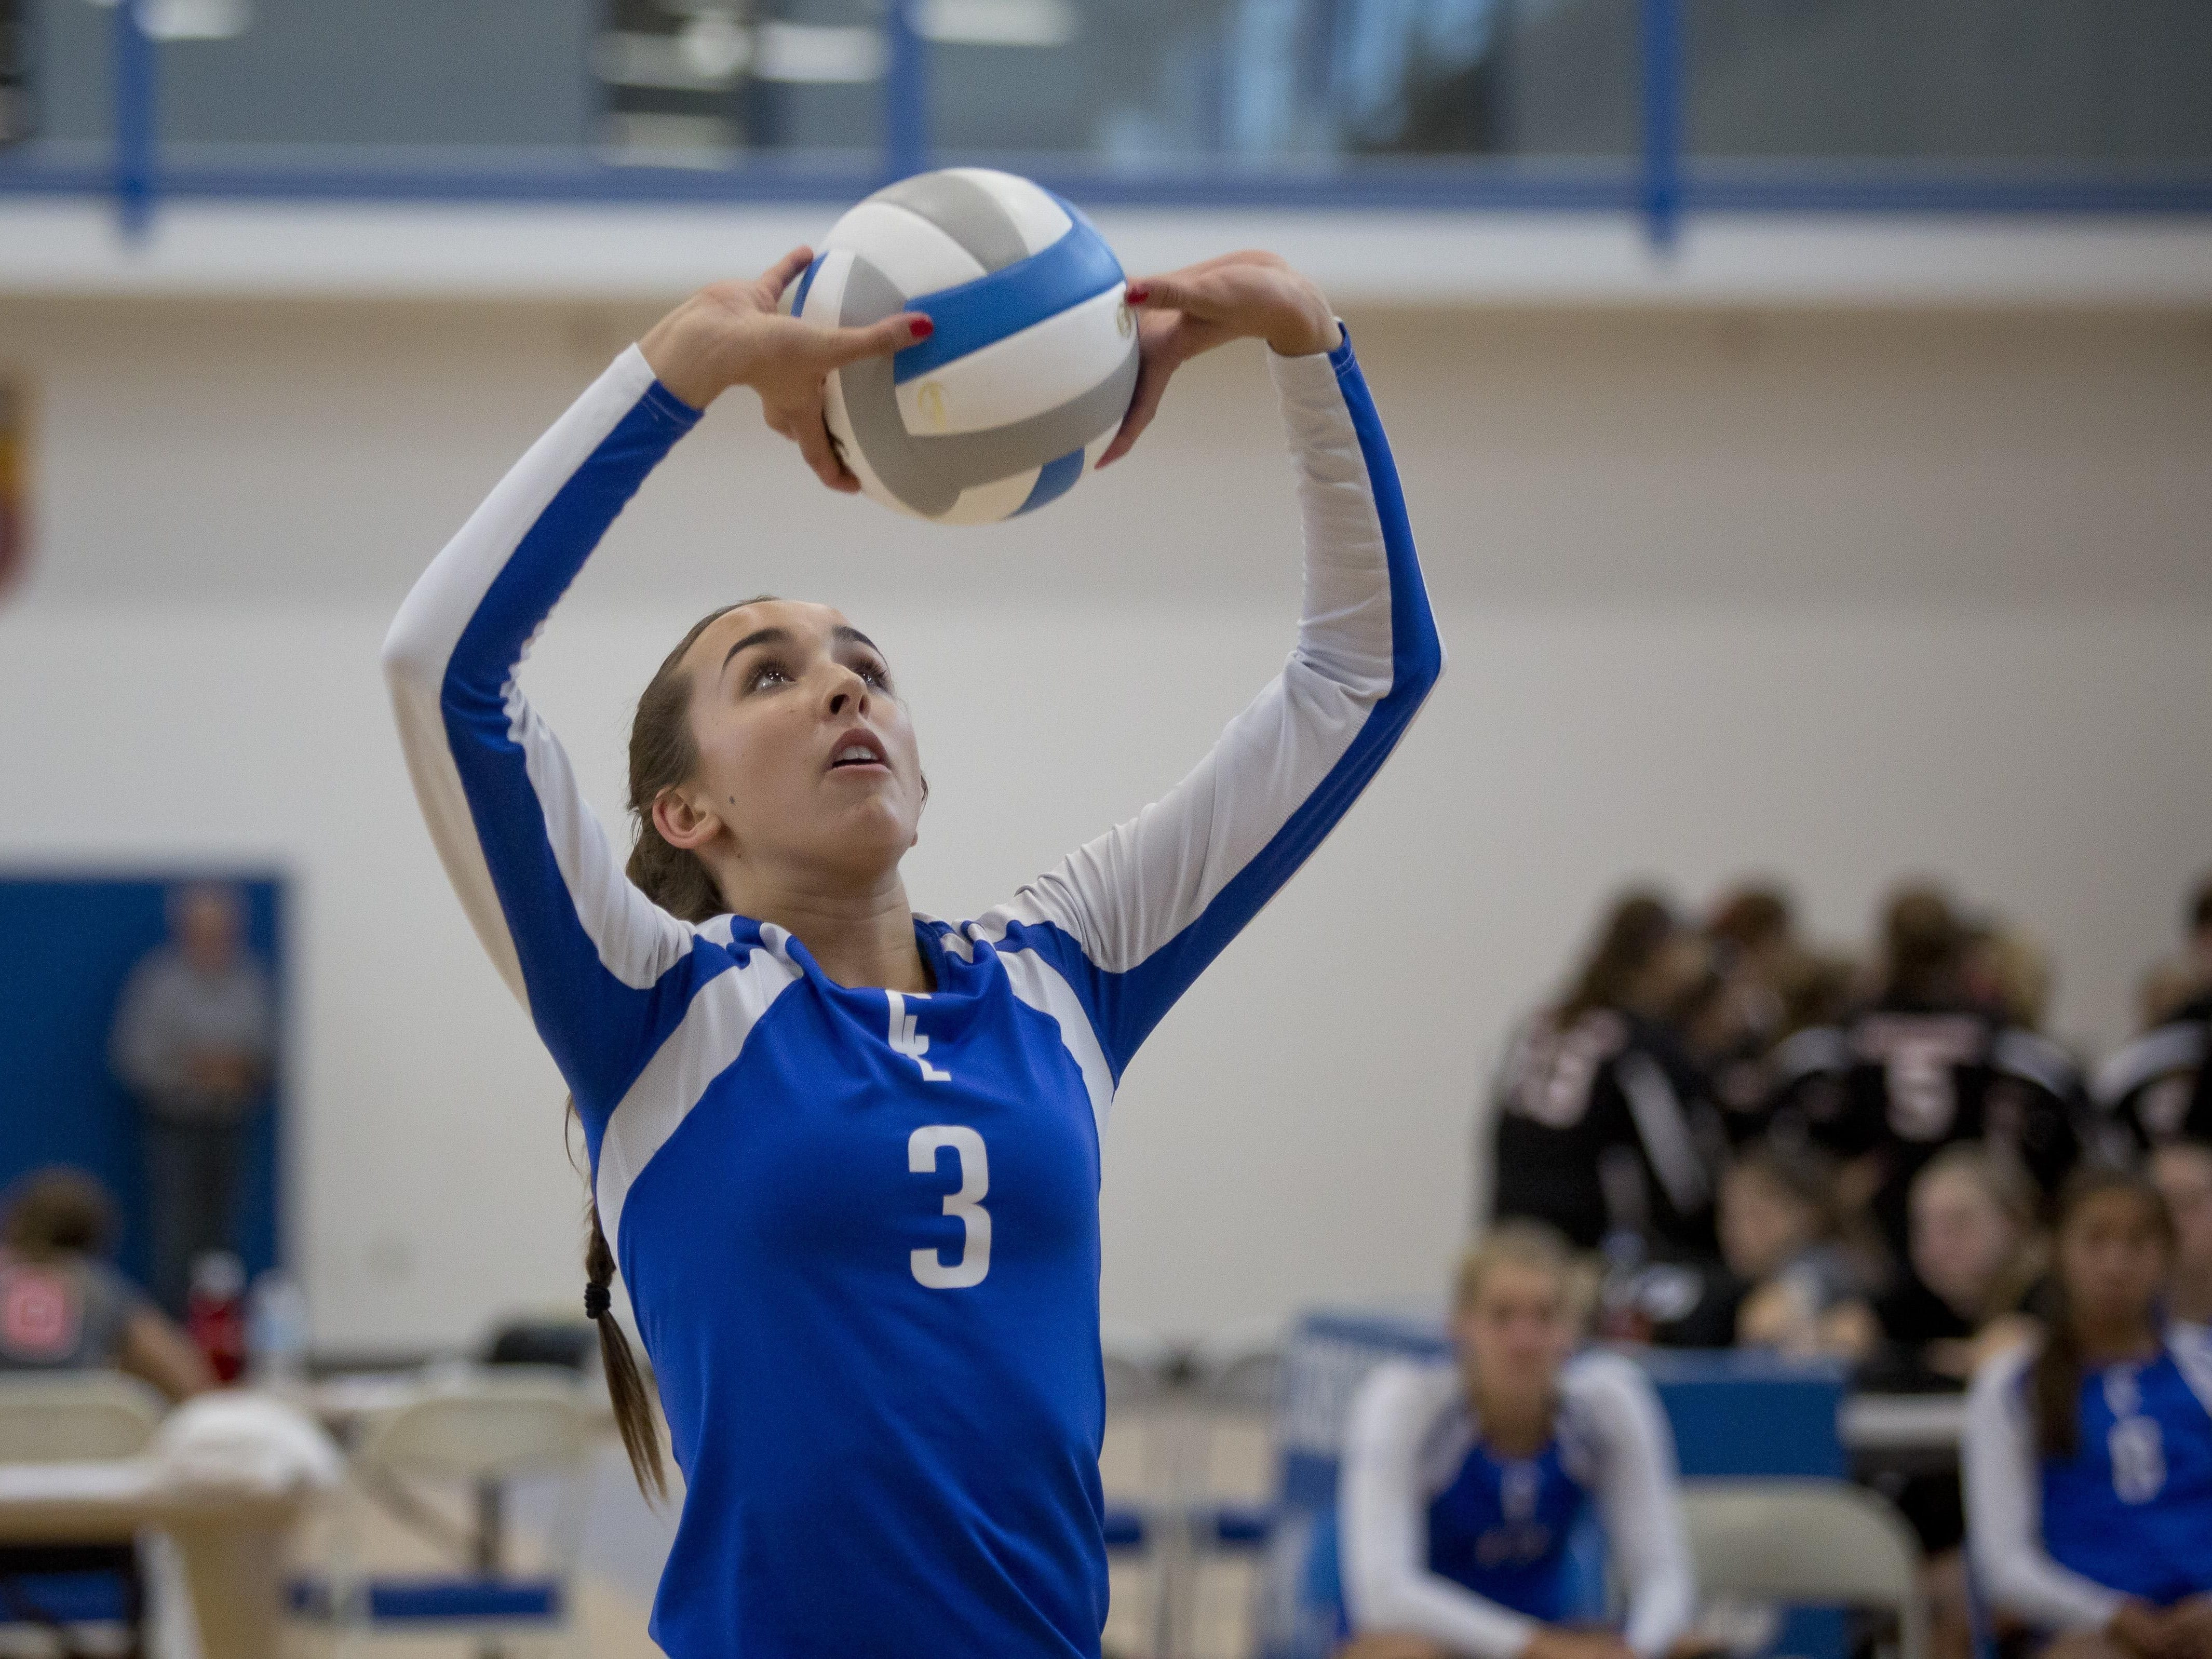 Cros-Lex's Rachel Soper sets the ball during the Pioneer Volleyball Invitational Saturday, September 12, 2015 at Cros-Lex High School.